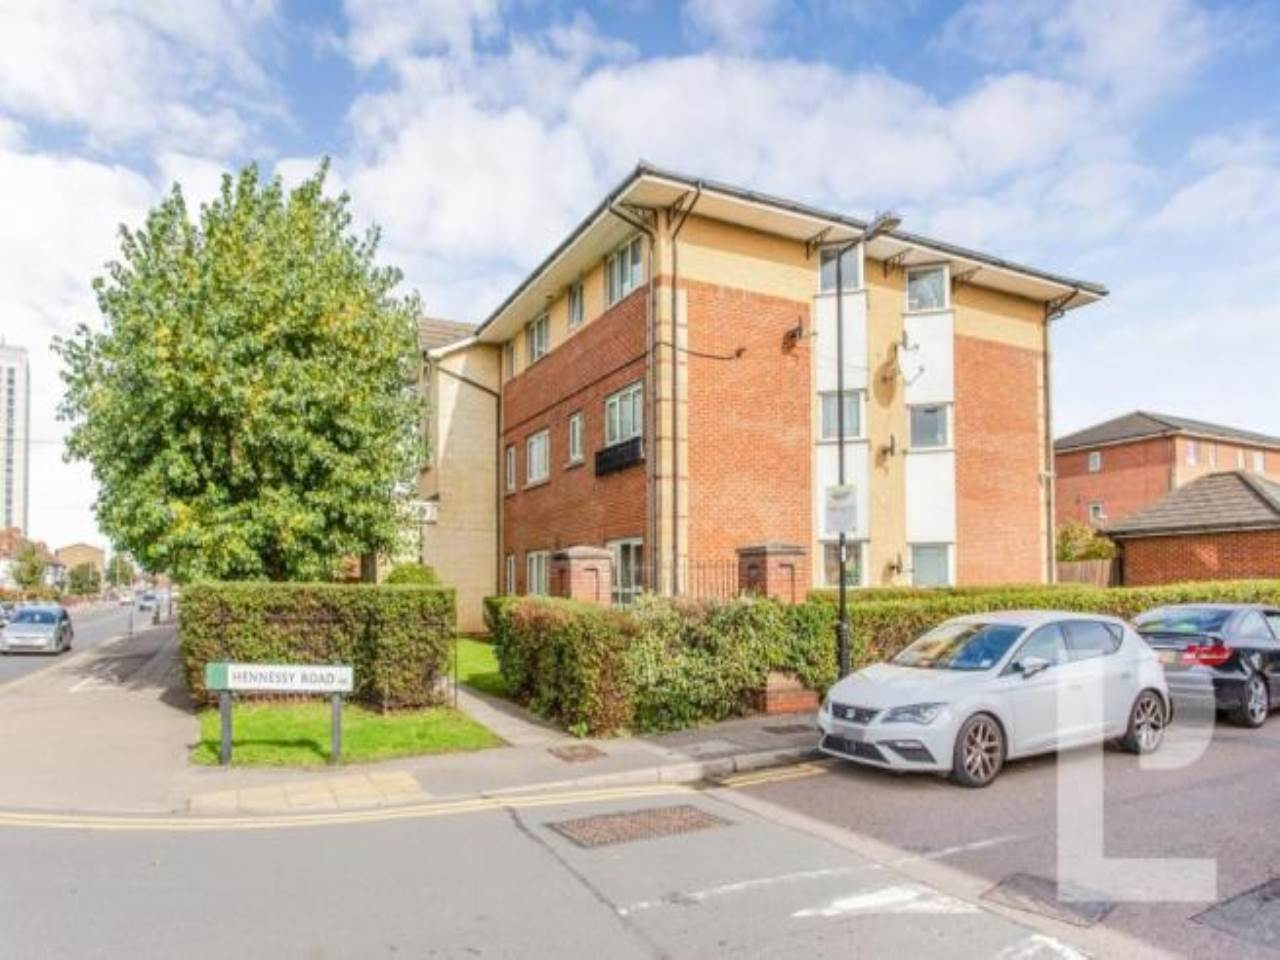 1 bed apartment for sale in London - Property Image 1